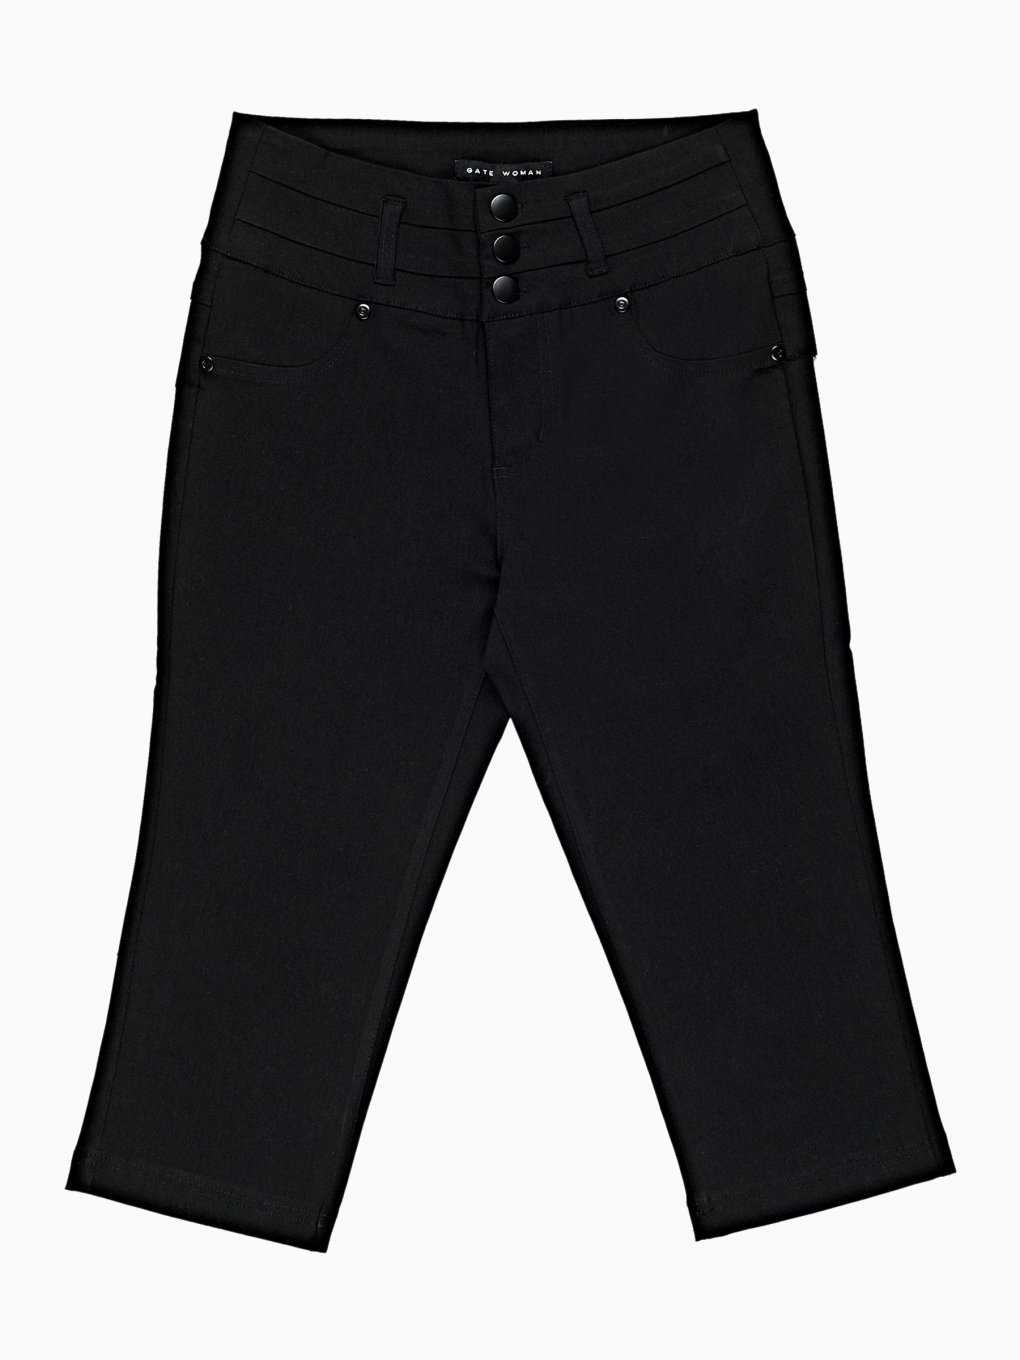 3/4 leg stretch trousers